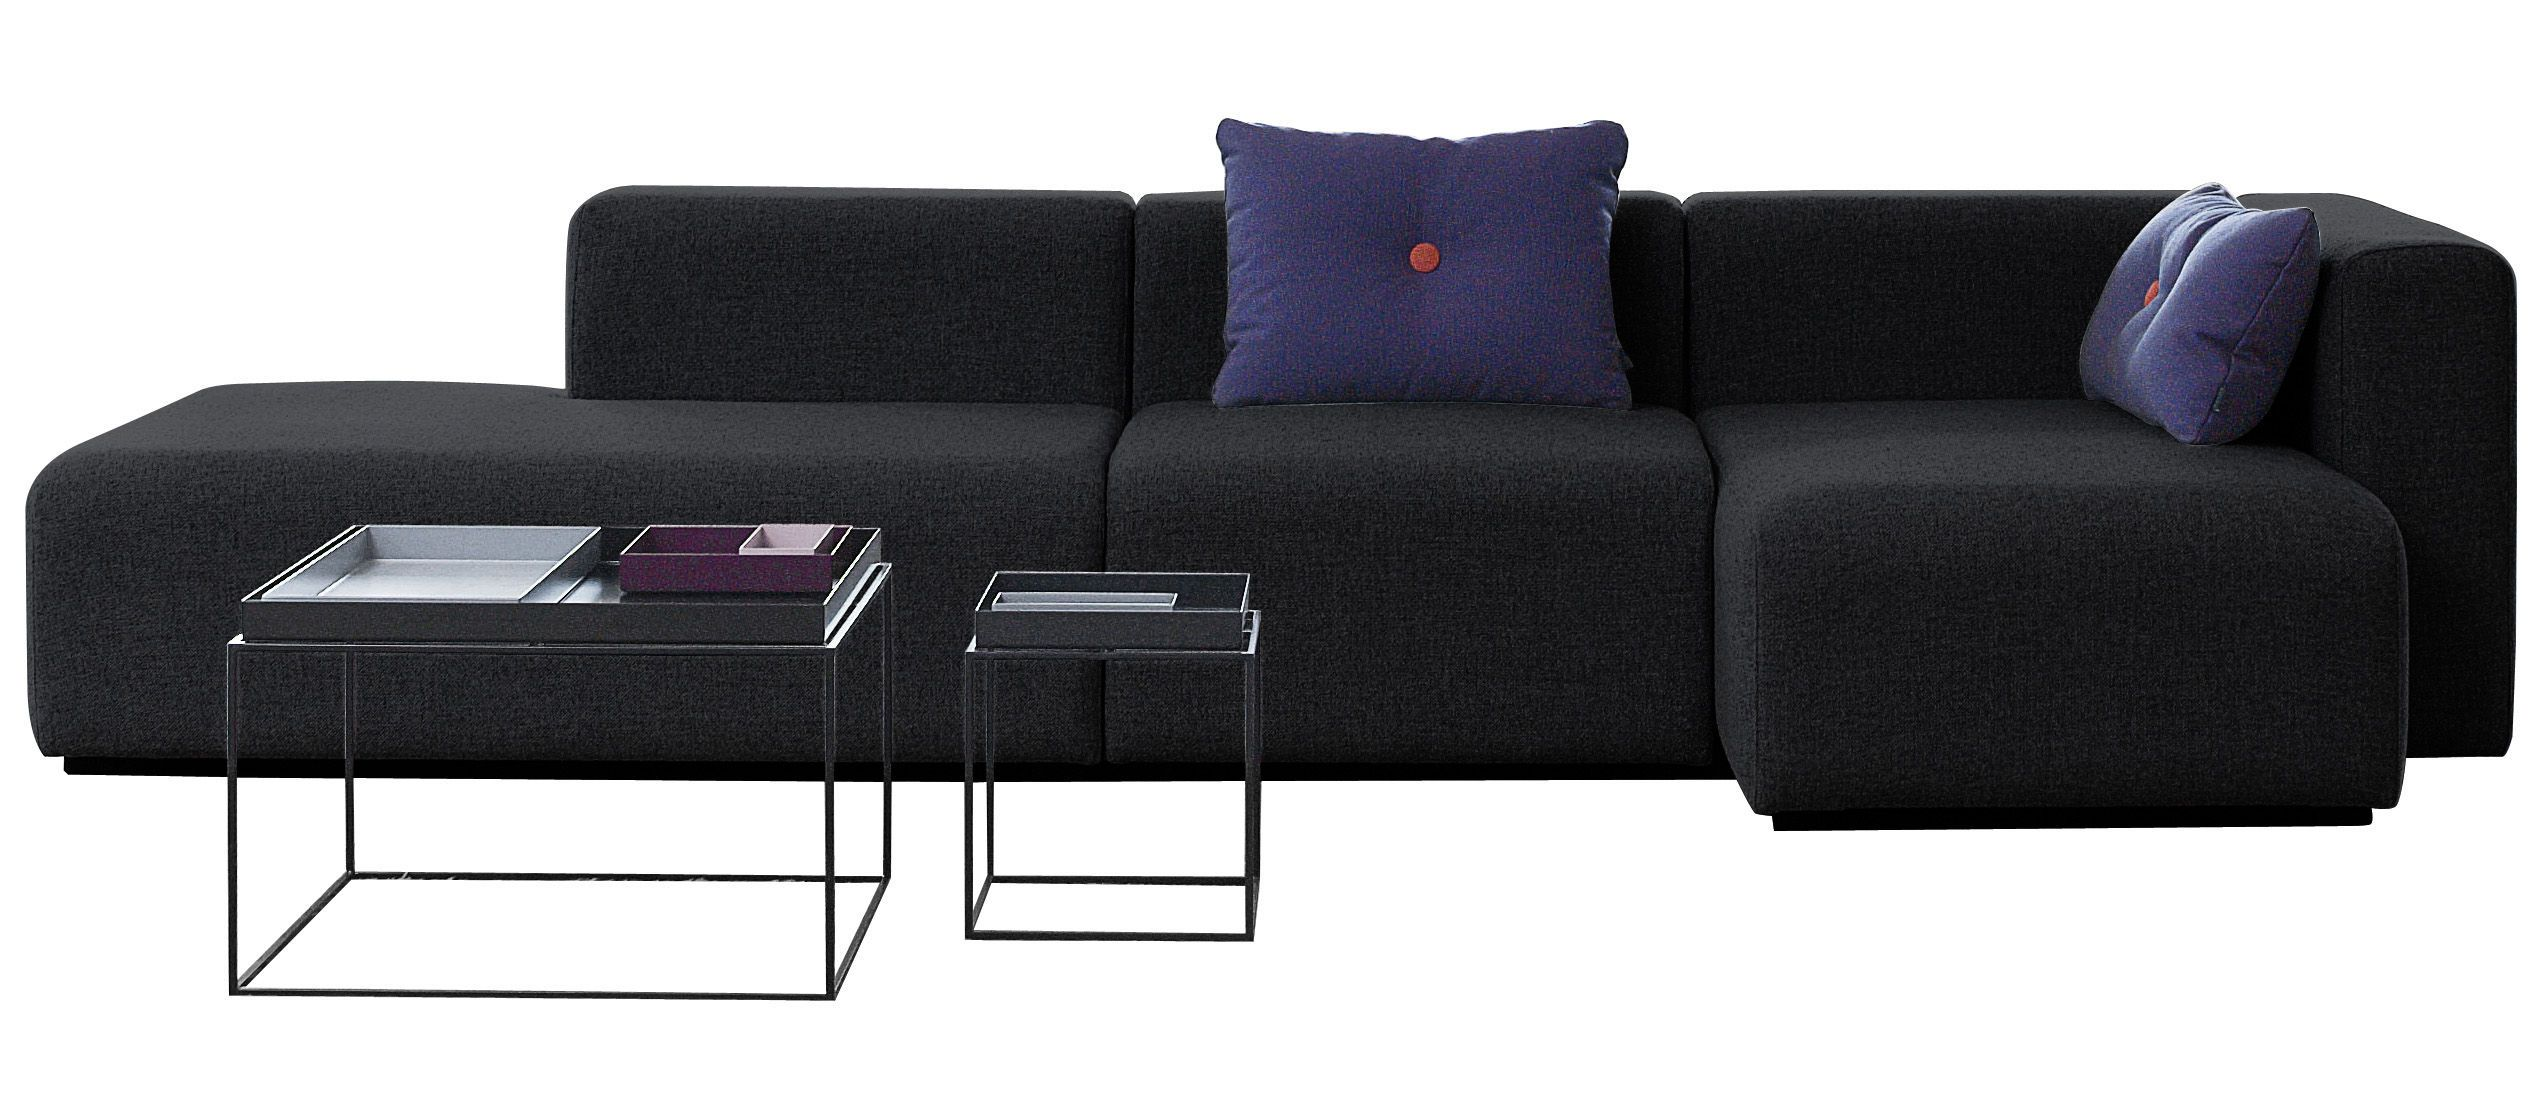 Billige Couch Hay Mags Sofa Dark Grey Home Wasn T Built In A Day Sofa